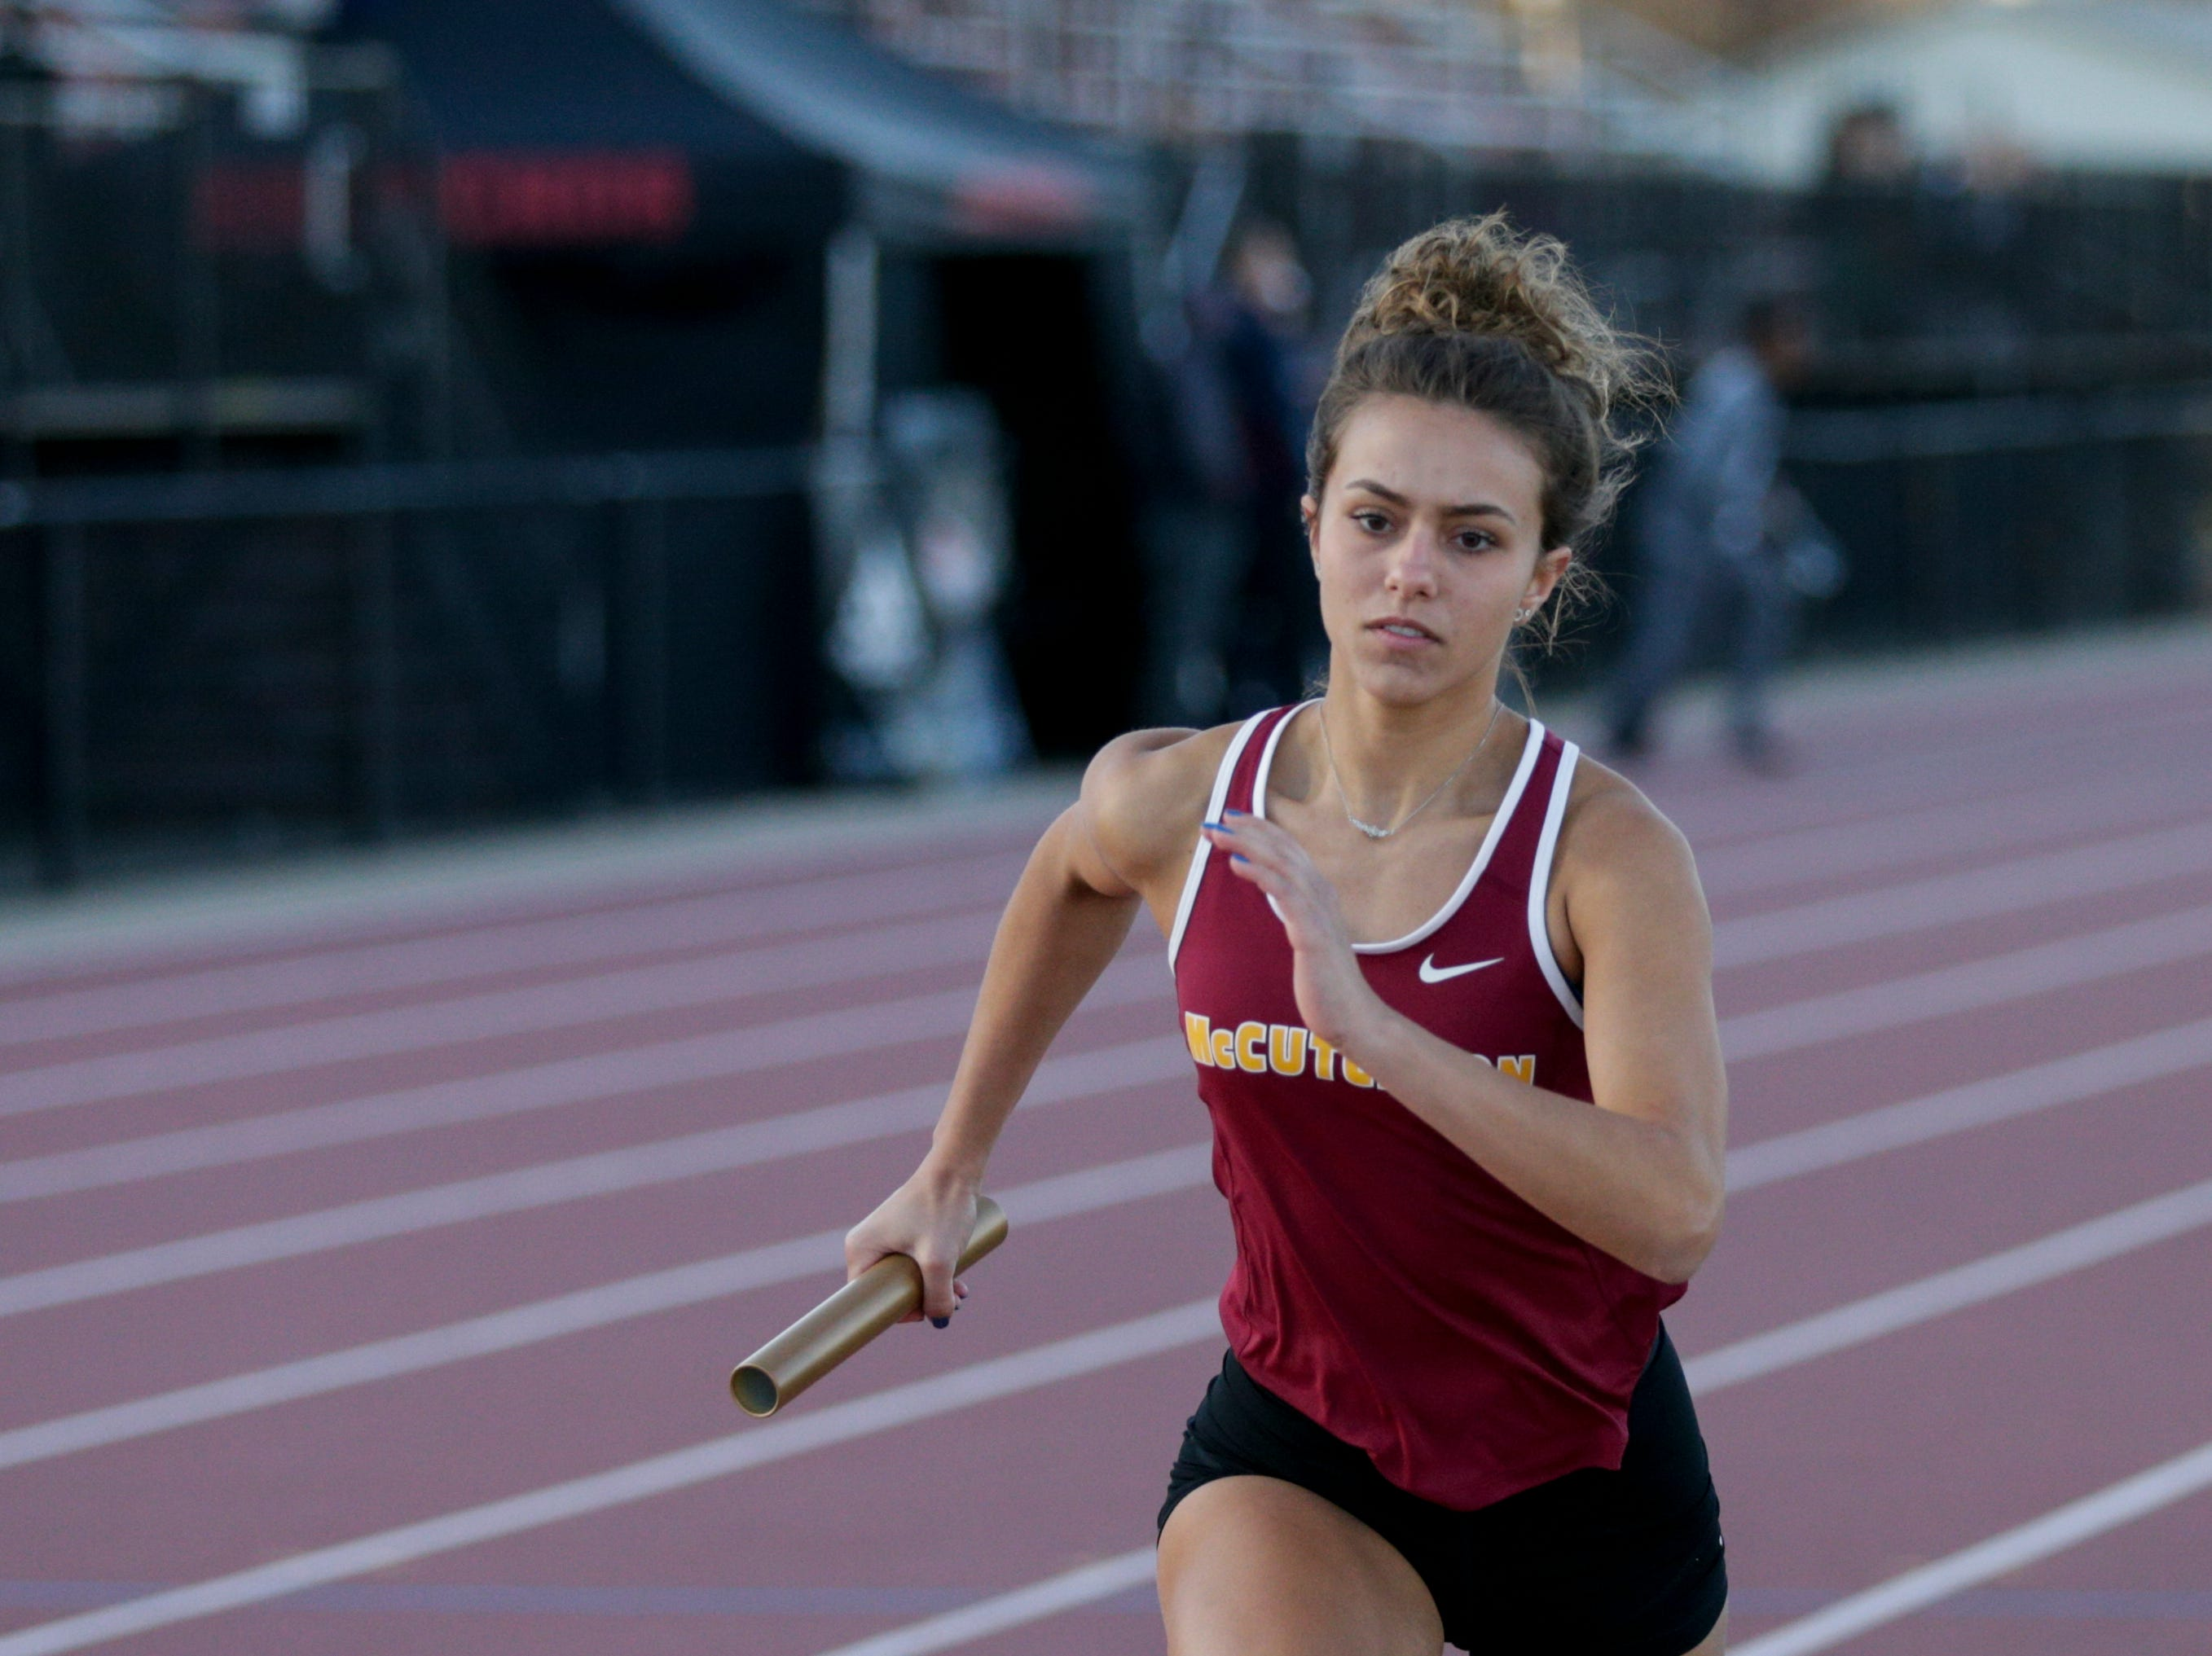 McCutcheon competes in the women's 4x400 meter relay during the 2019 Sprinters Showcase, Friday, April 12, 2019, at Lafayette Jeff High School in Lafayette.